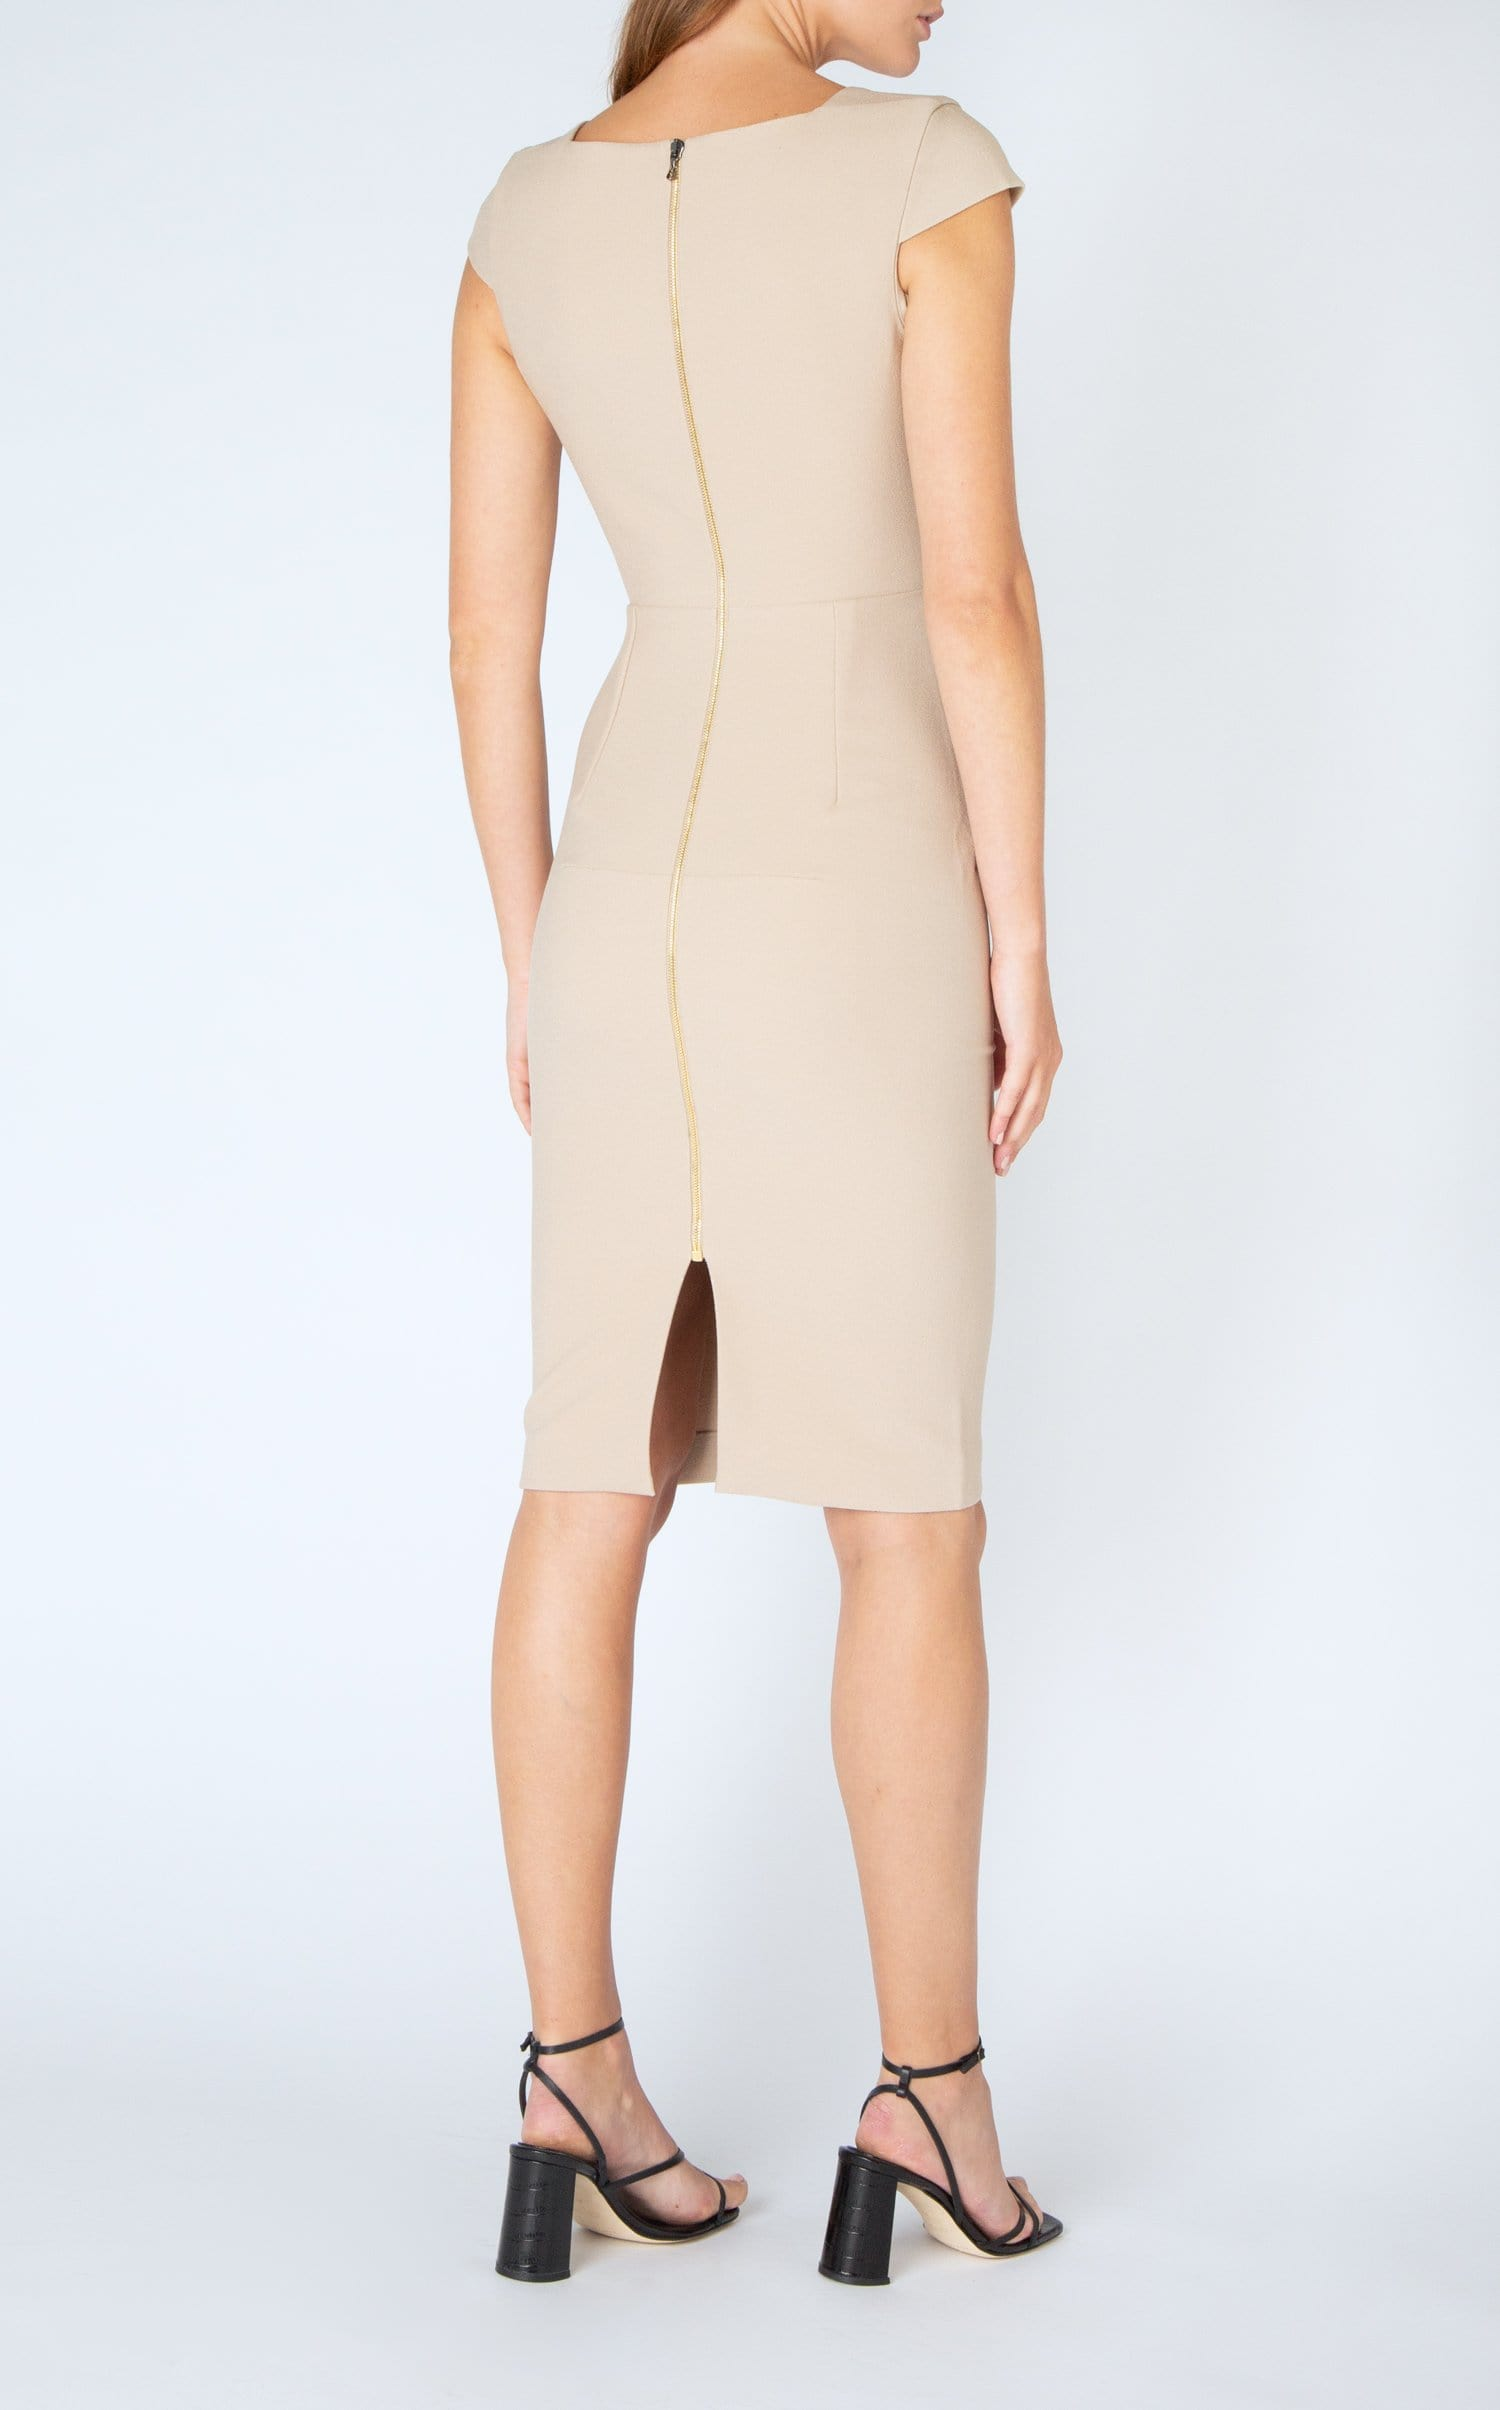 Jeddler Dress